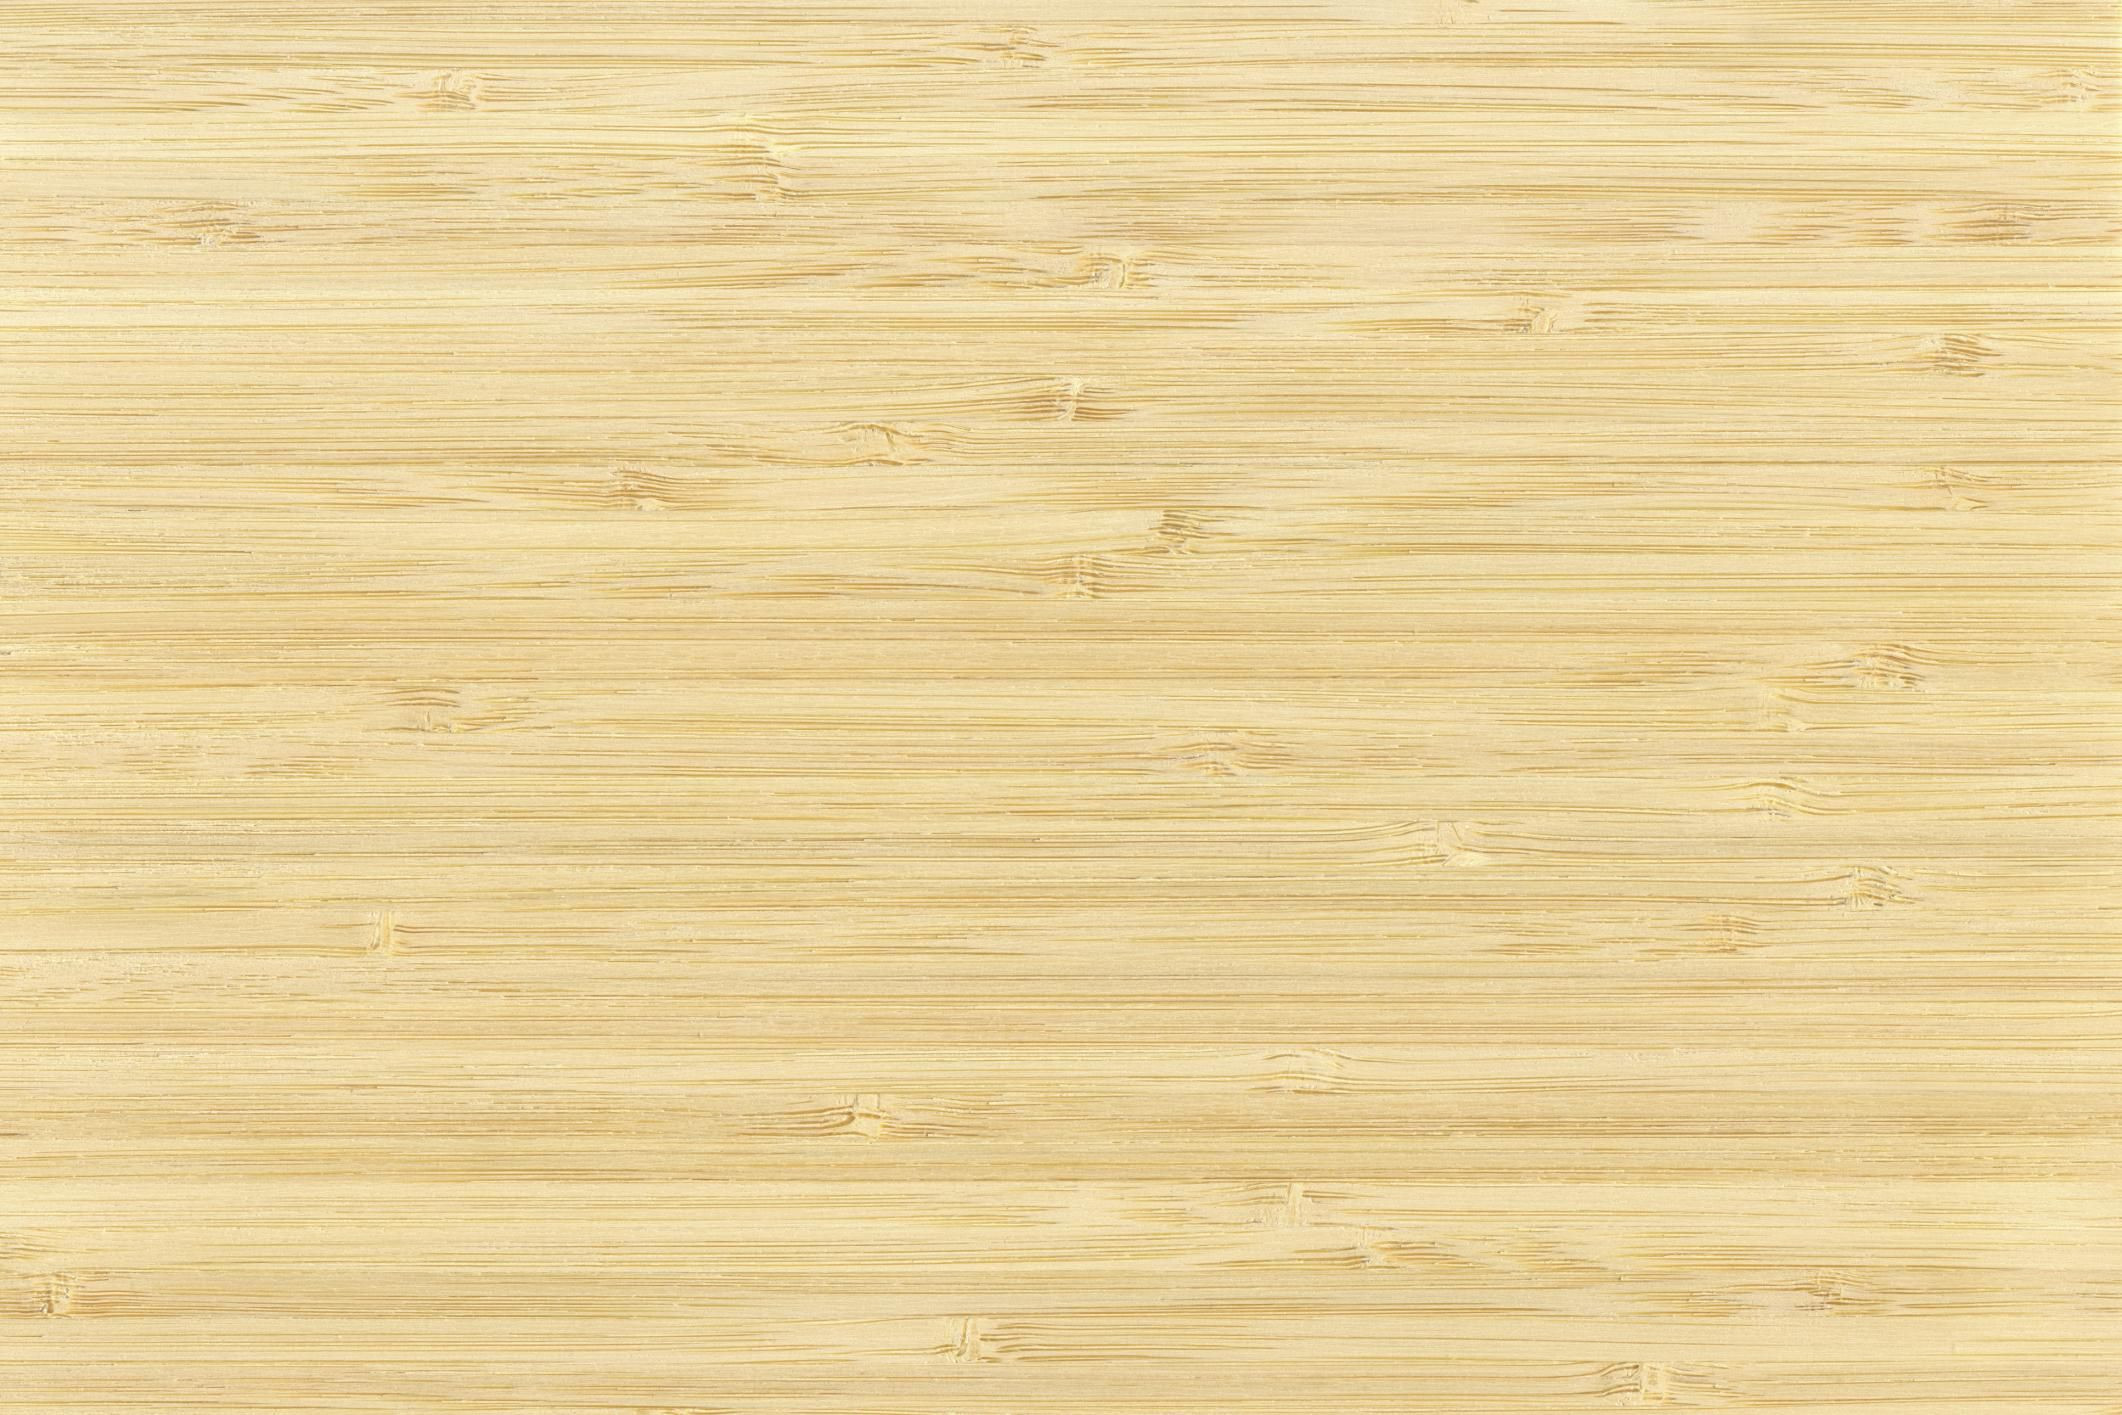 28 attractive Hardwood Floor Refinishing toledo 2021 free download hardwood floor refinishing toledo of bamboo flooring in a bathroom things to consider with regard to 182740579 56a2fd883df78cf7727b6d14